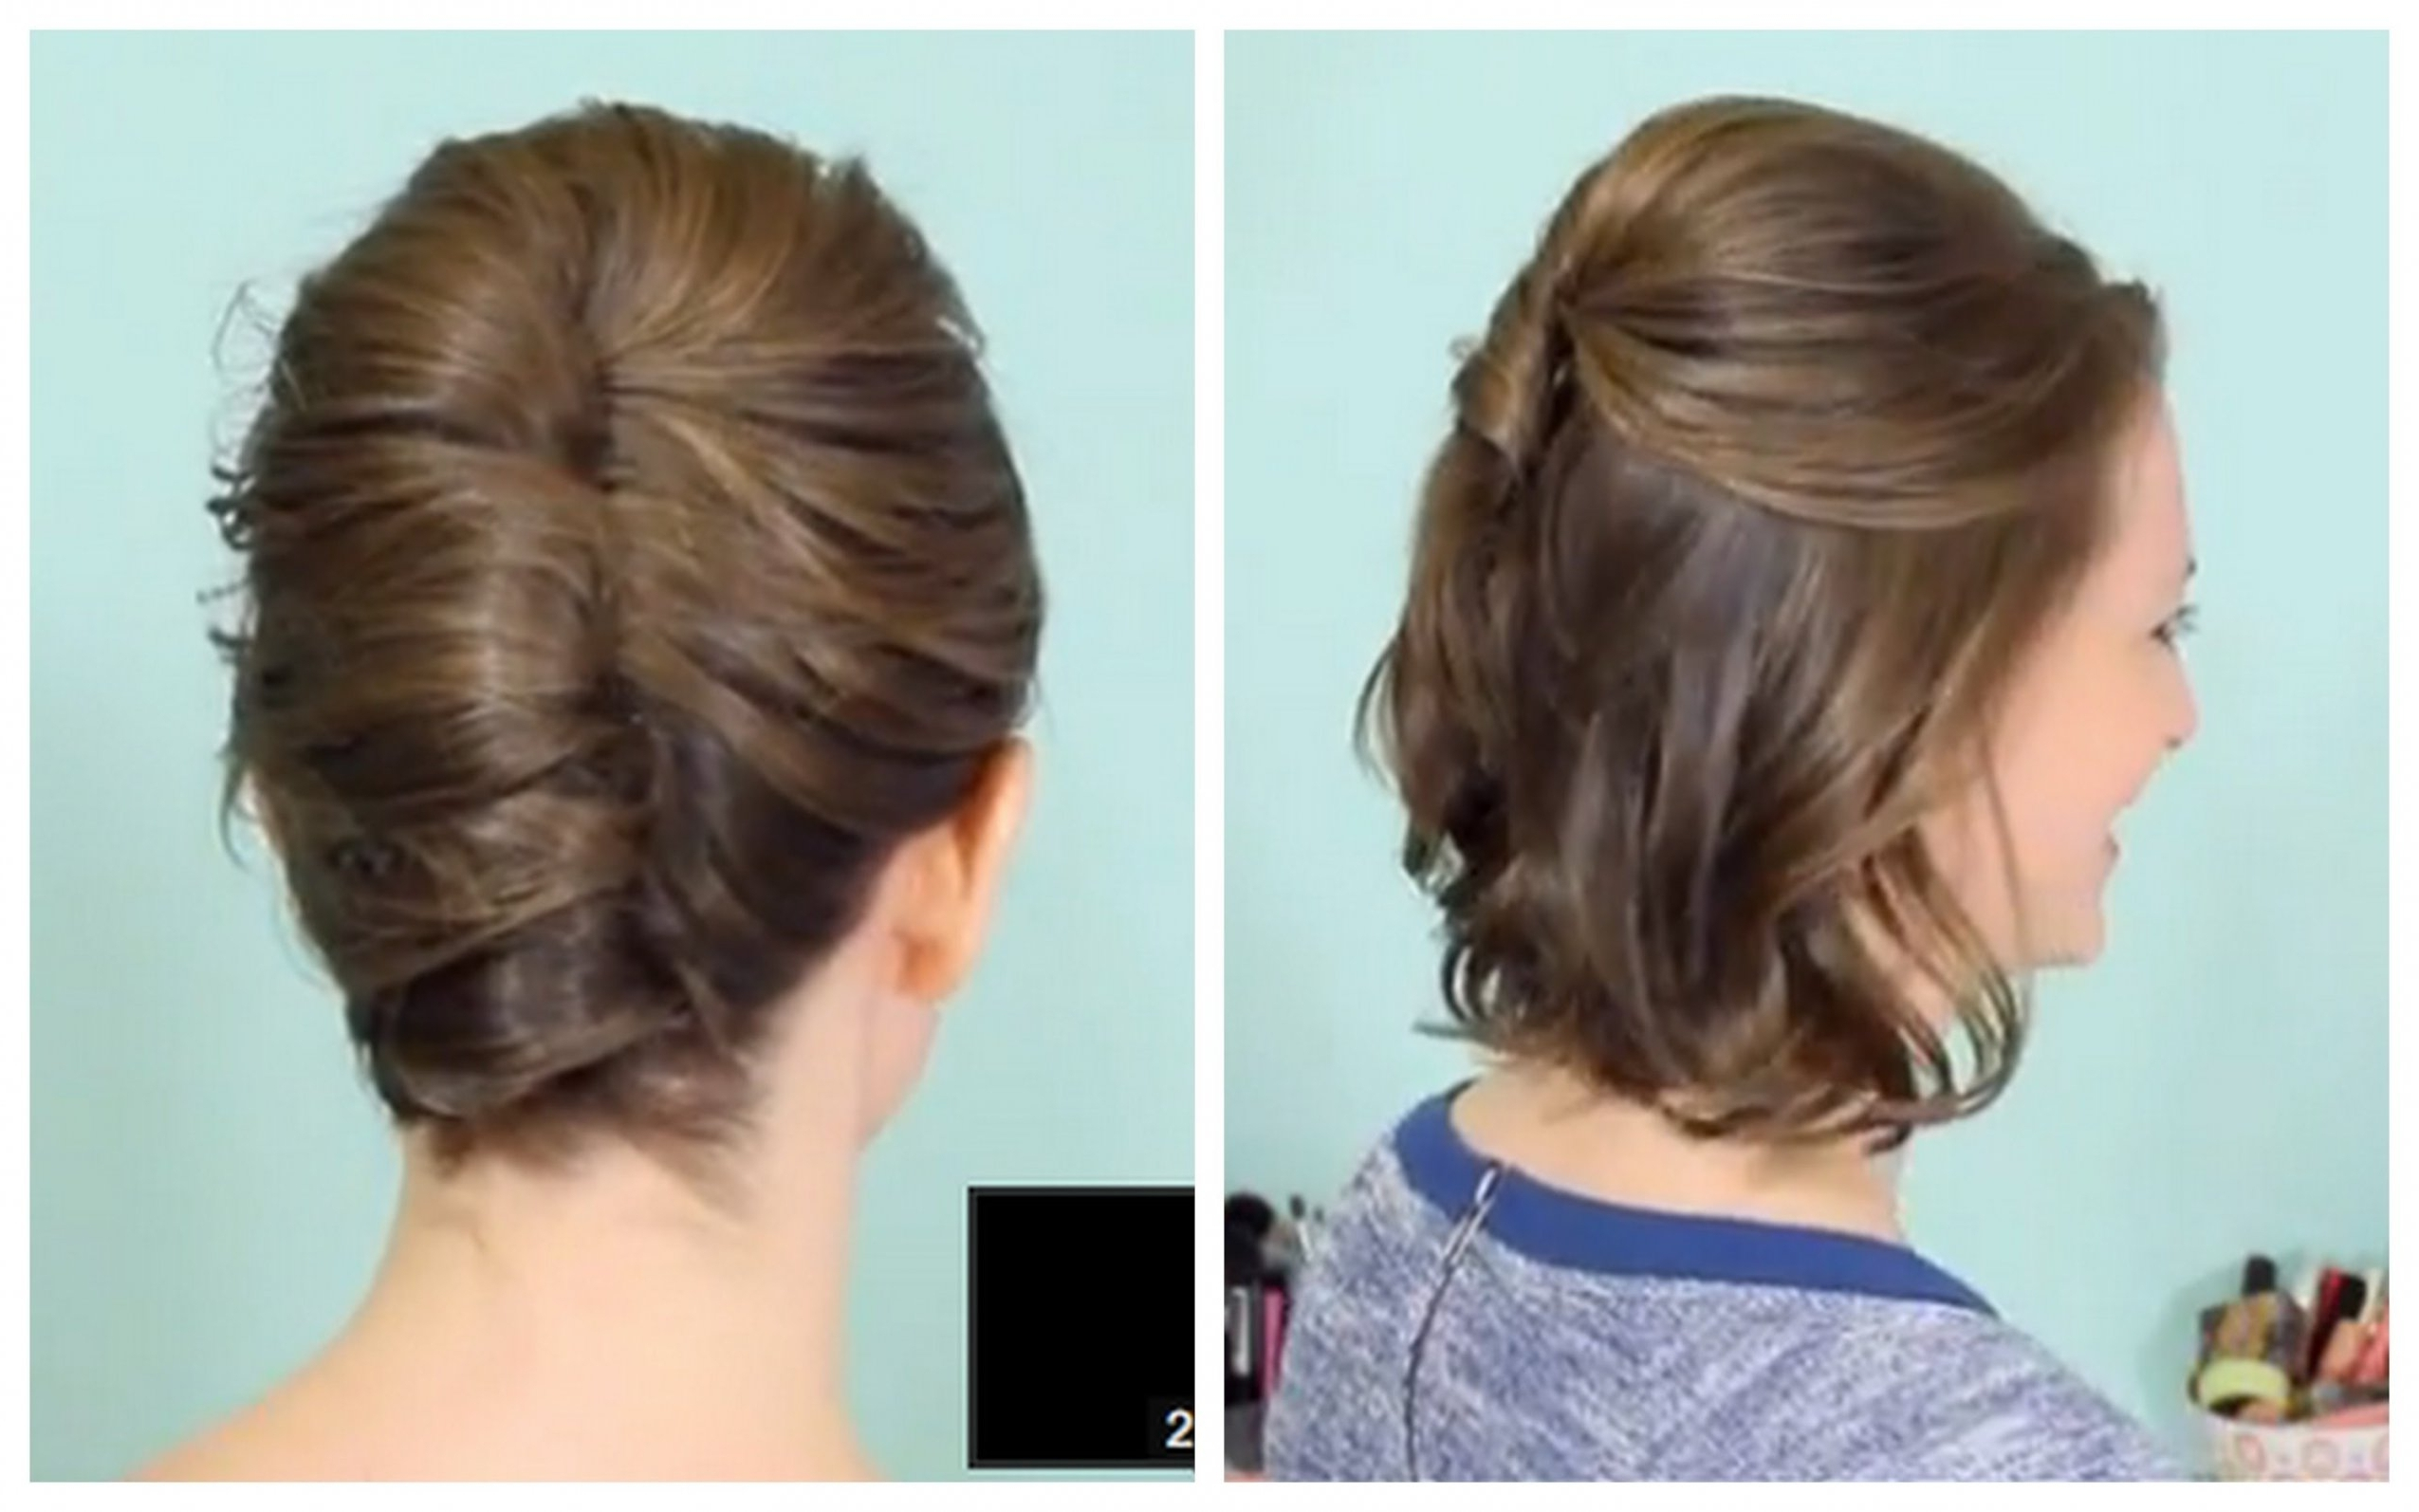 Updo Short Hairstyles French Twist Half Updo For Short Hair | Latest Throughout French Twist Updo Hairstyles For Medium Hair (View 15 of 15)